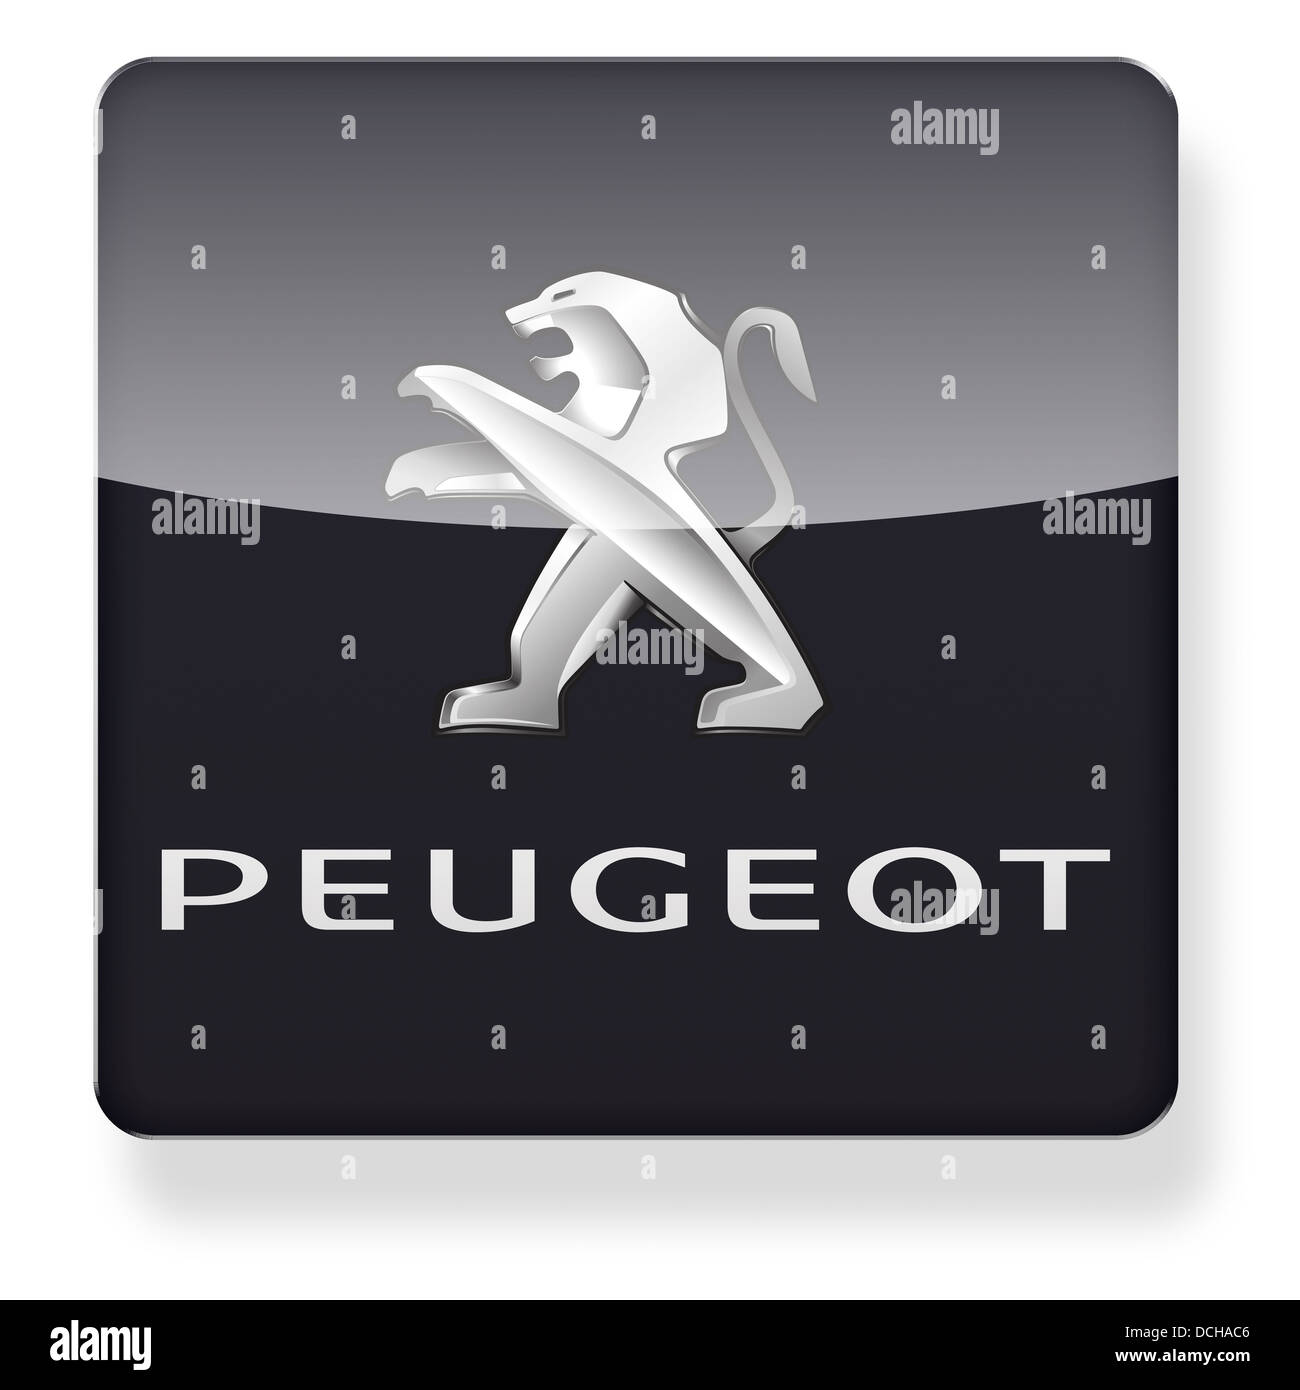 Peugeot logo as an app icon. Clipping path included. - Stock Image